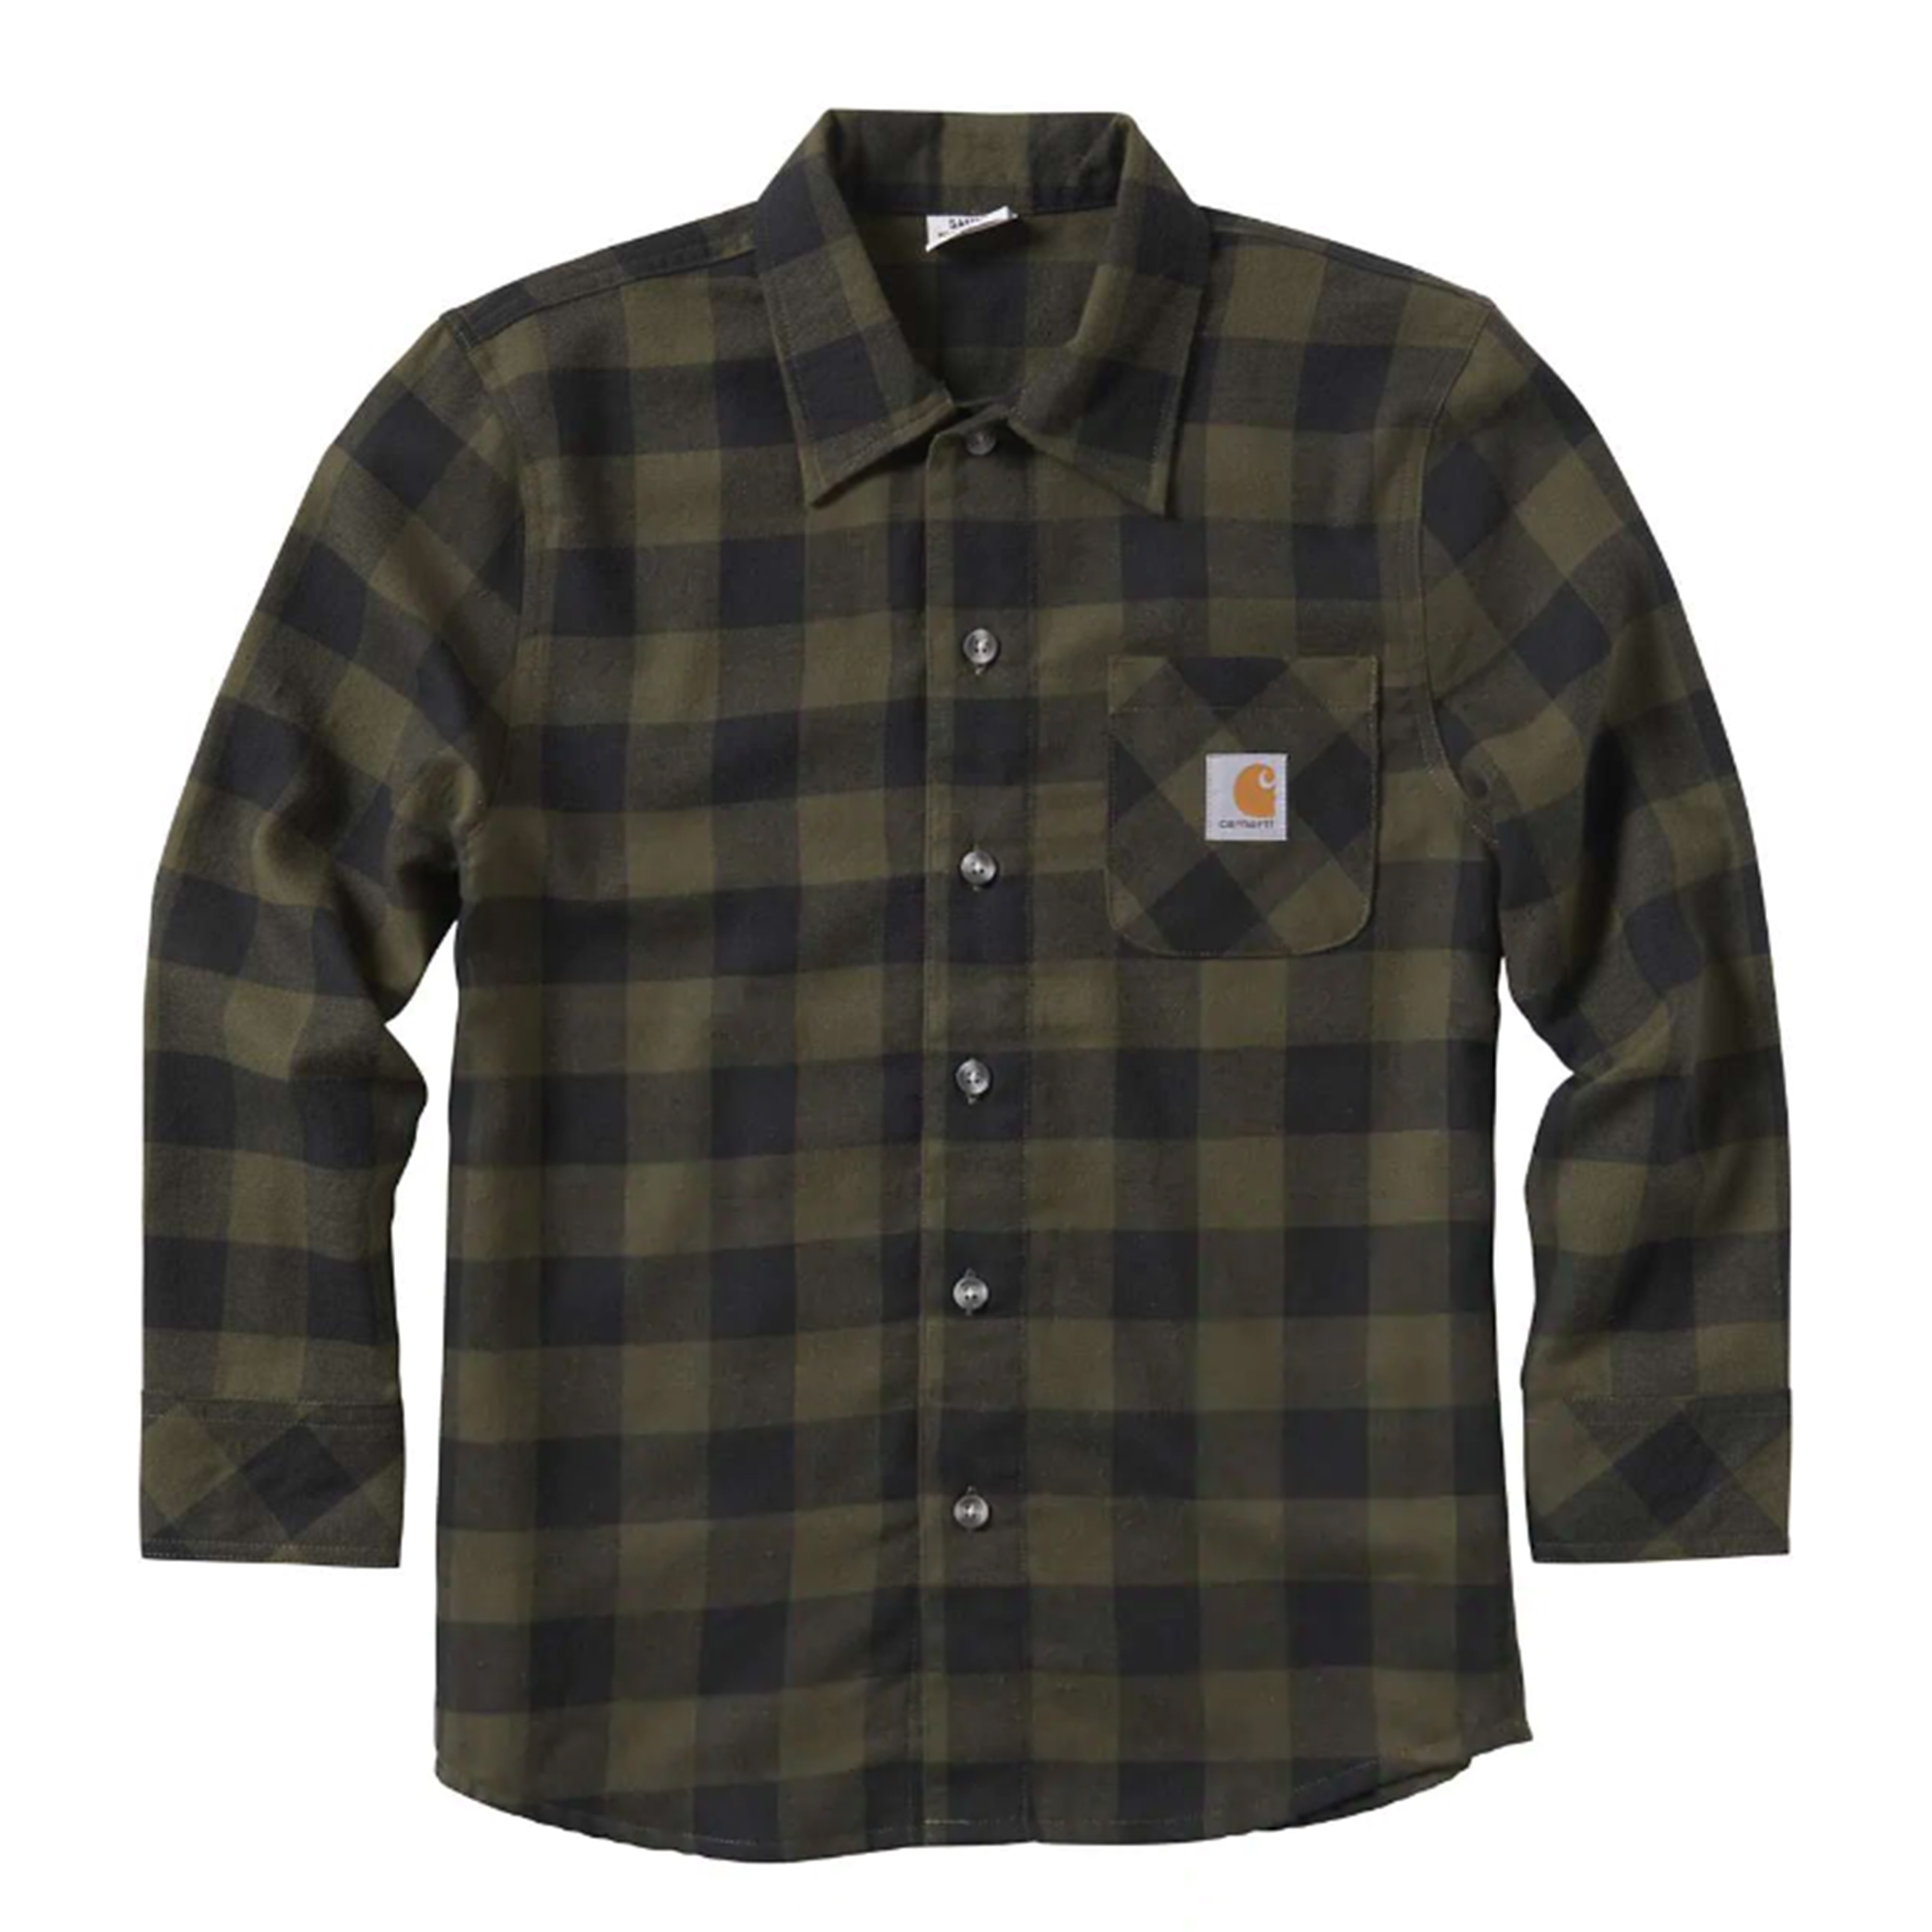 Youth Long Sleeve Plaid Shirt, Green/Blk, swatch